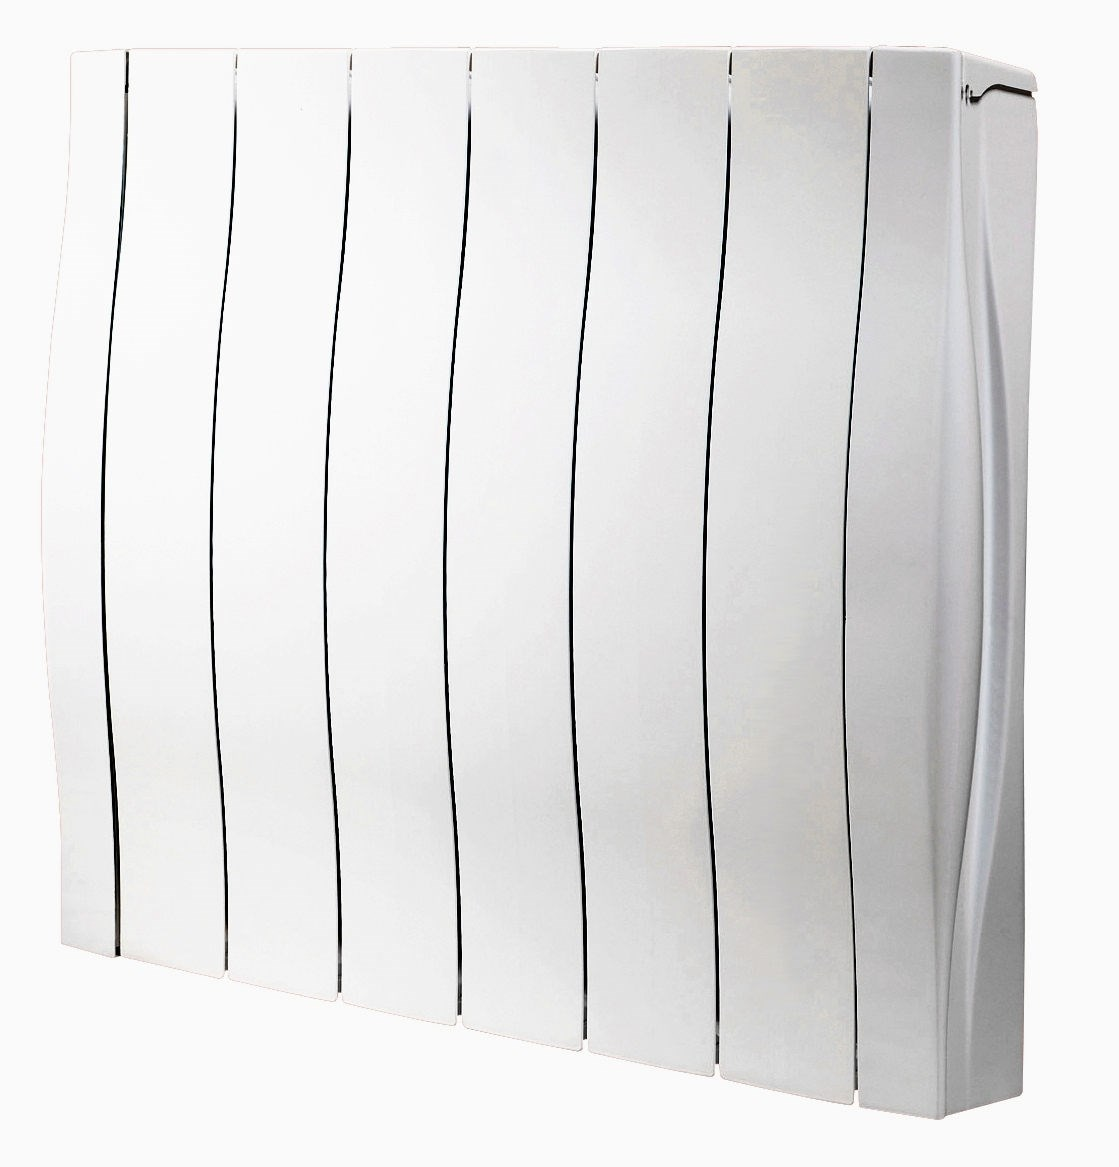 radiateur lectrique inertie bilbao thermor. Black Bedroom Furniture Sets. Home Design Ideas